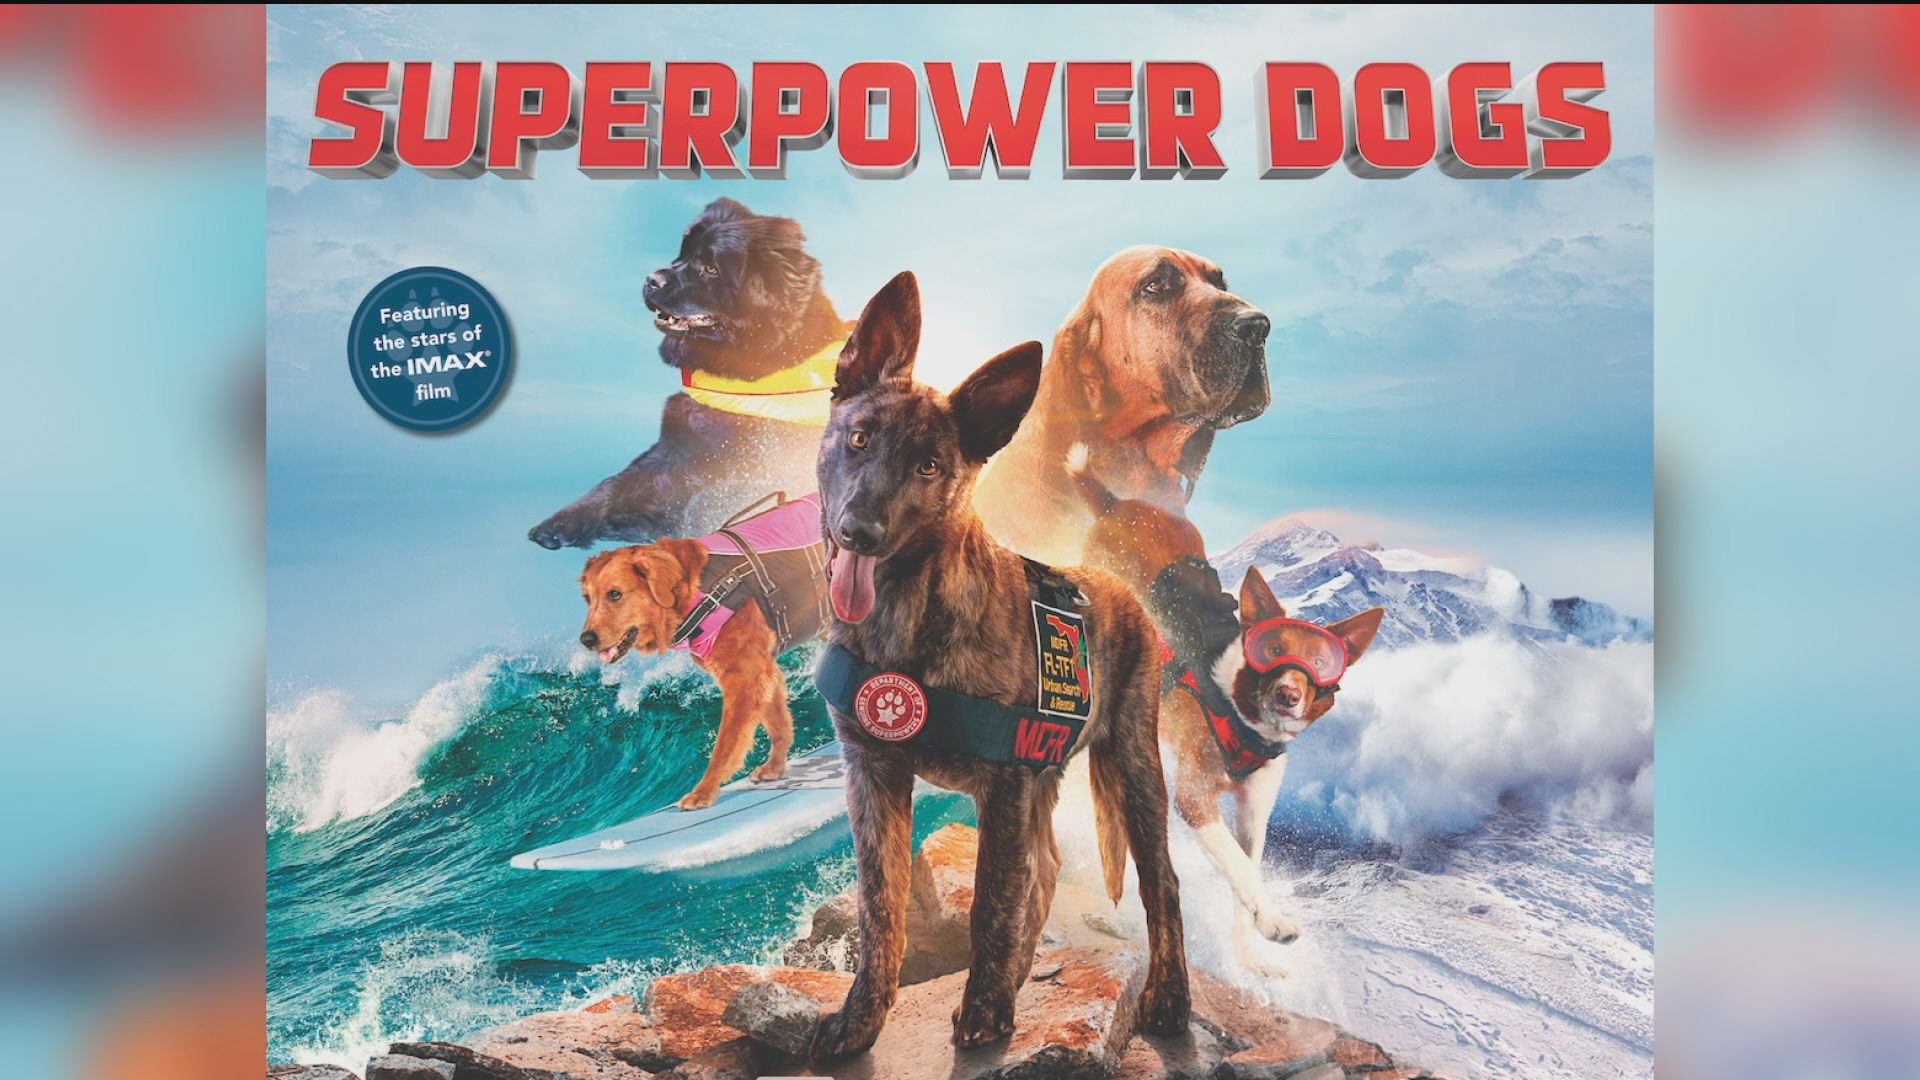 New IMAX movie follows superhero dogs including Ricochet the surfing dog